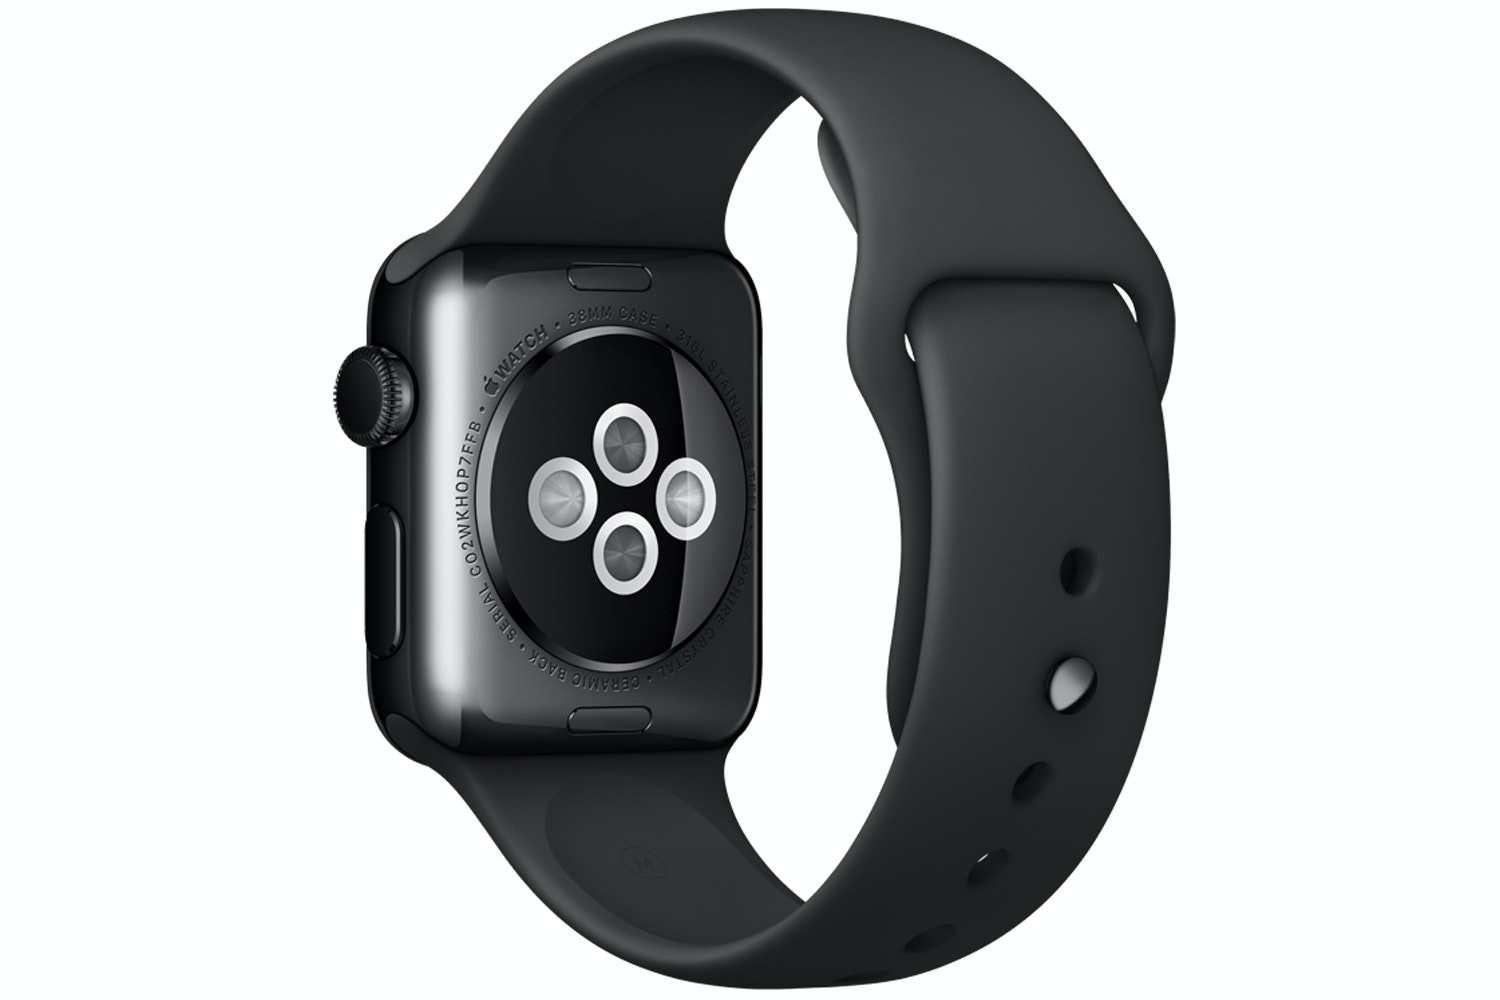 Apple Watch | 38mm Space Black Stainless Steel Case with Black Sport Band